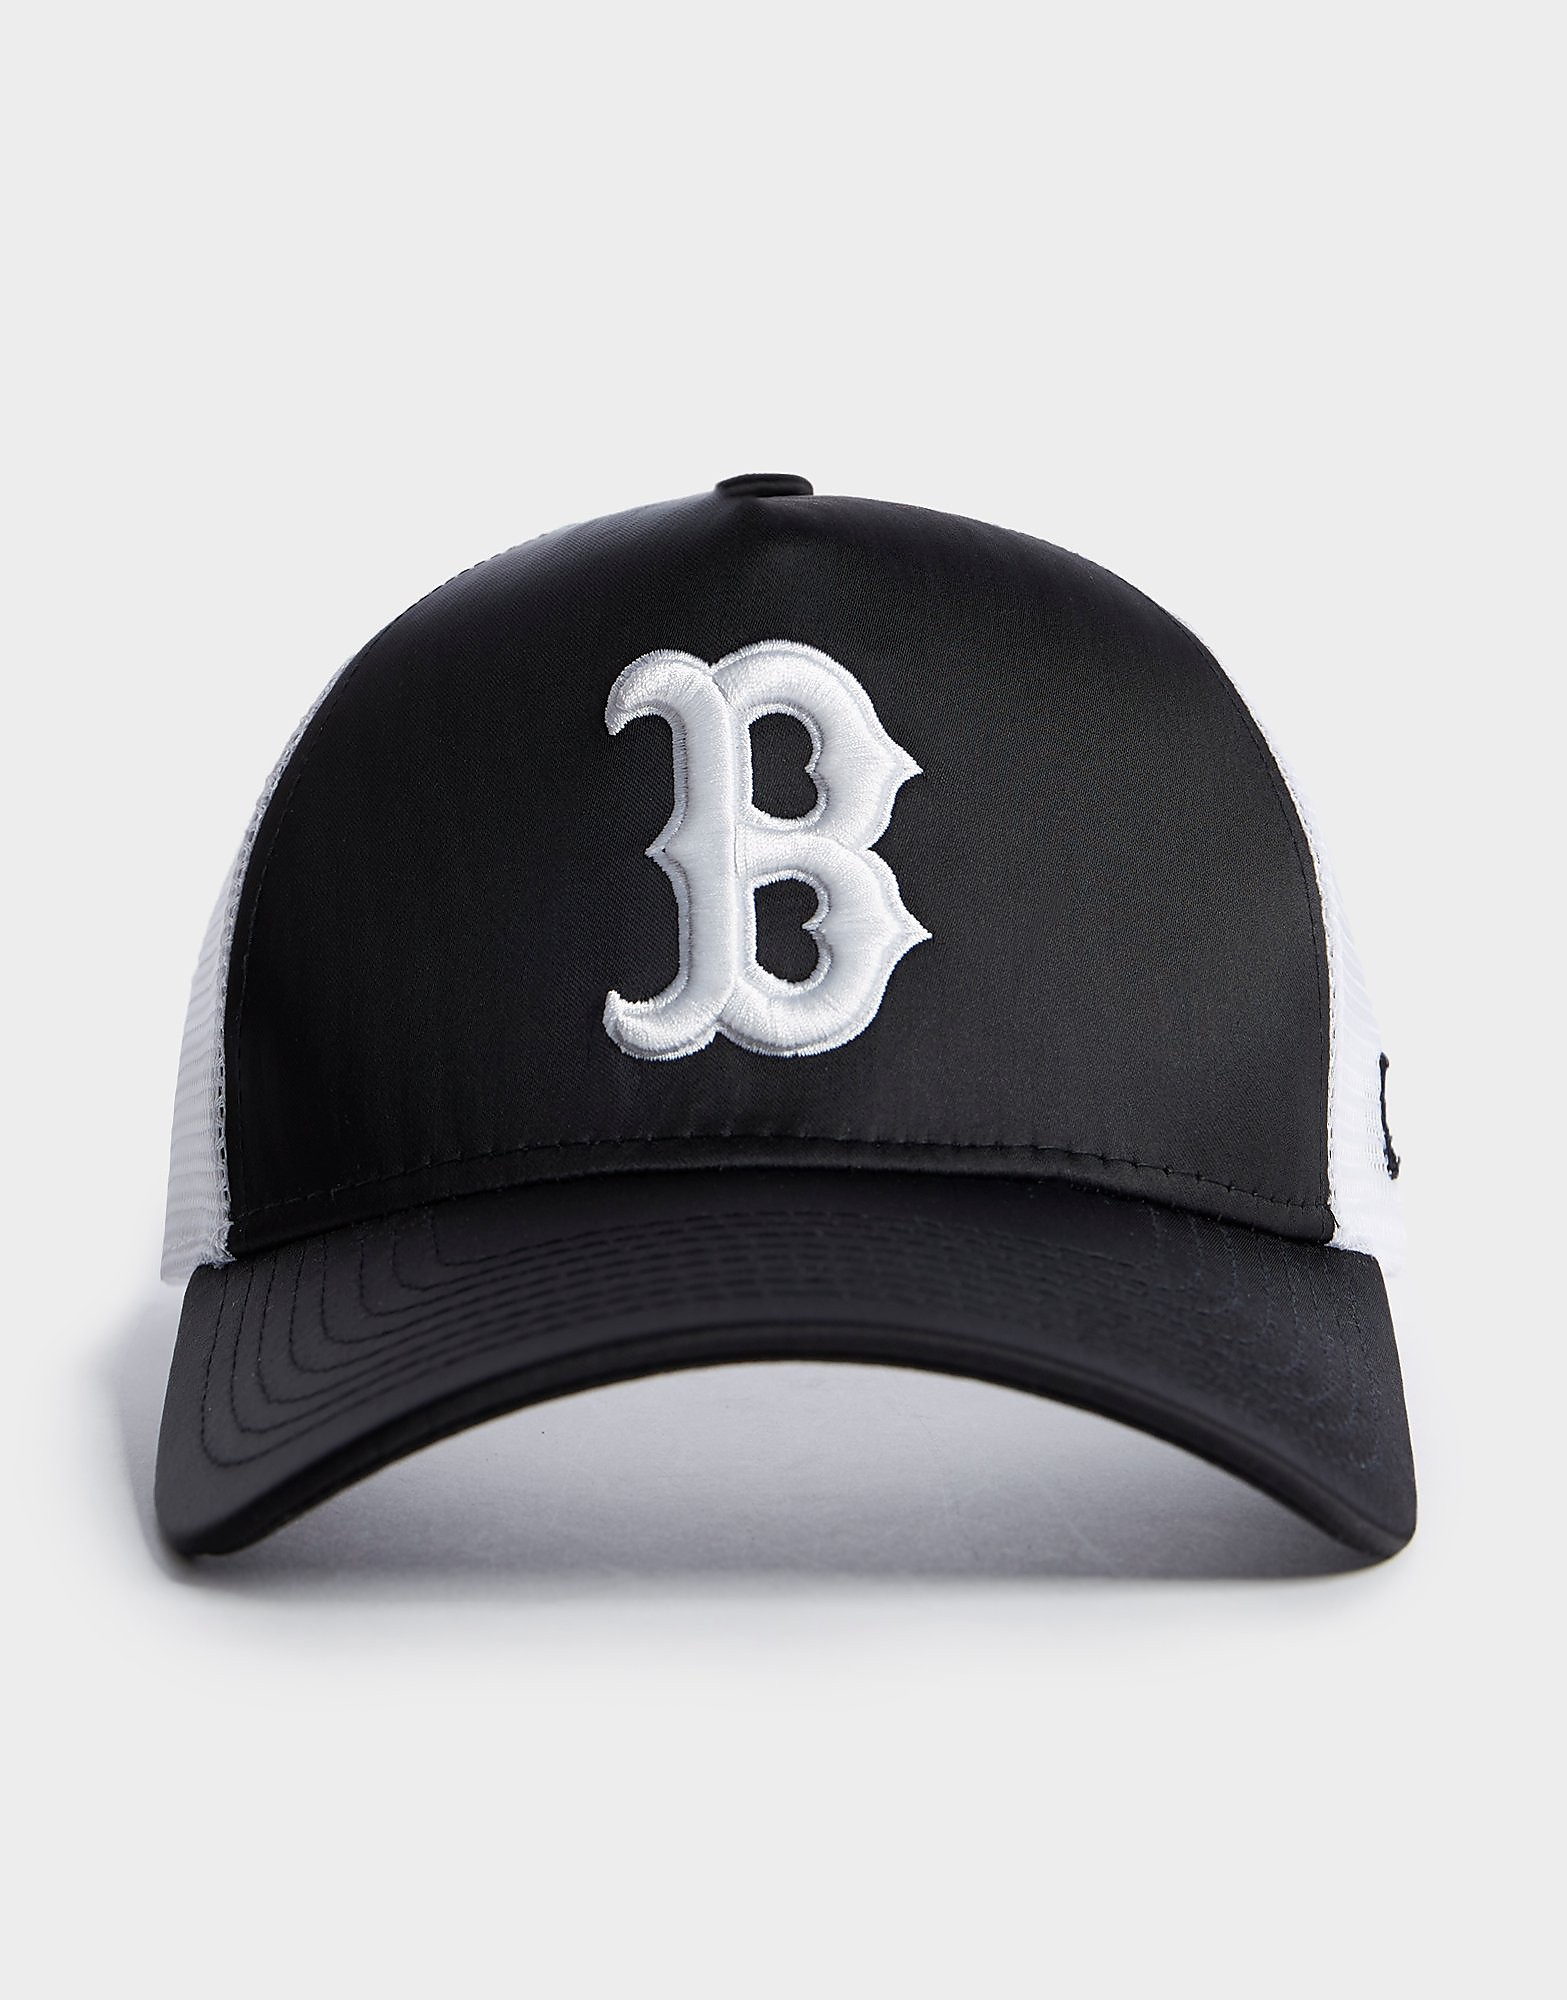 New Era MLB Boston Red Sox Trucker Cap